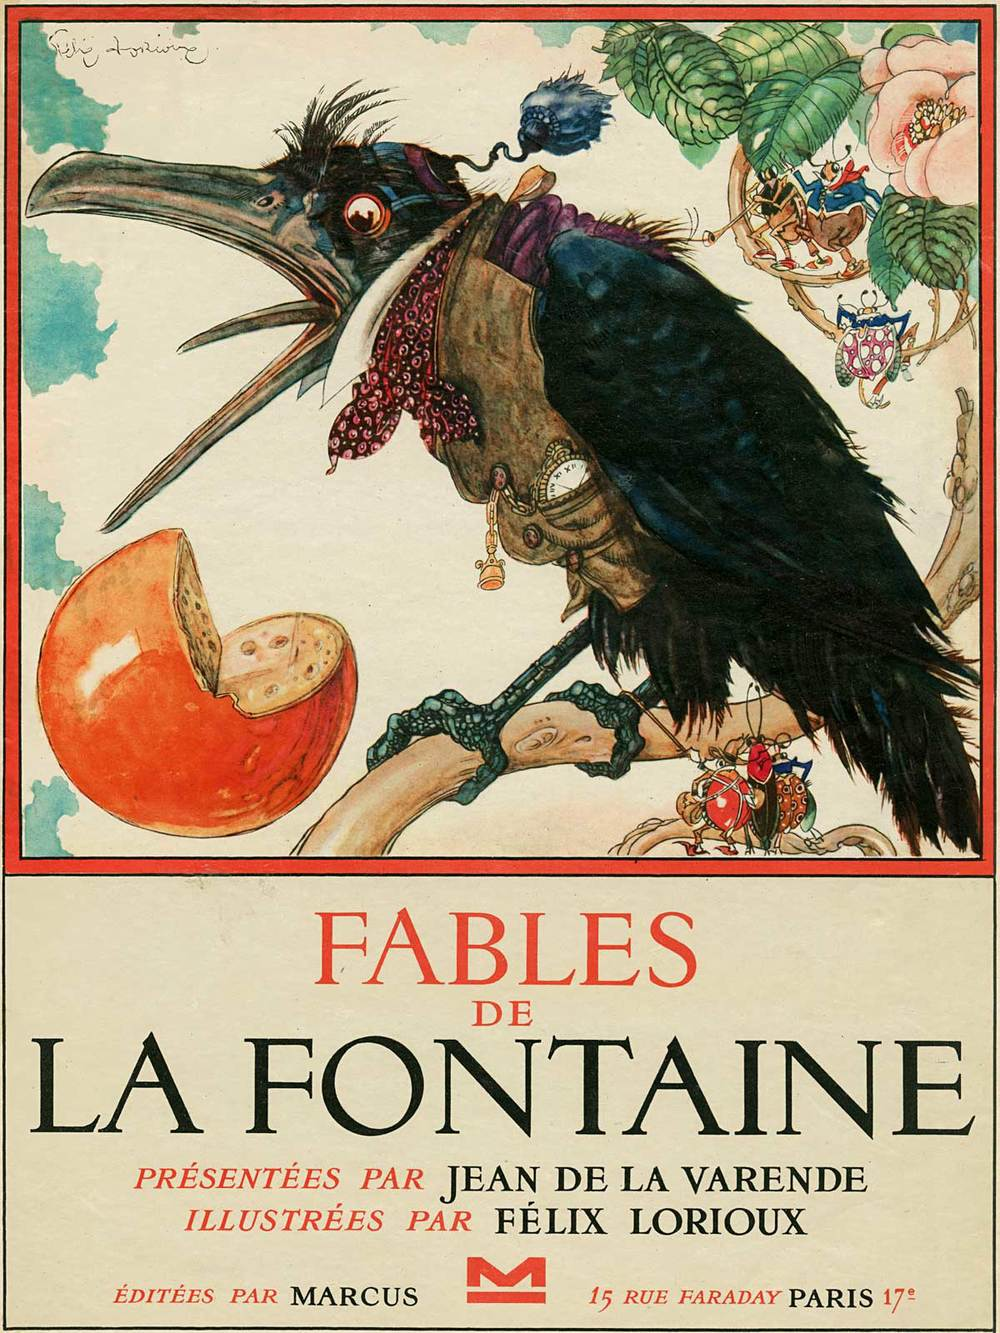 Fables illustrated by Félix Lorioux. (EmptyMansionsBook.com)